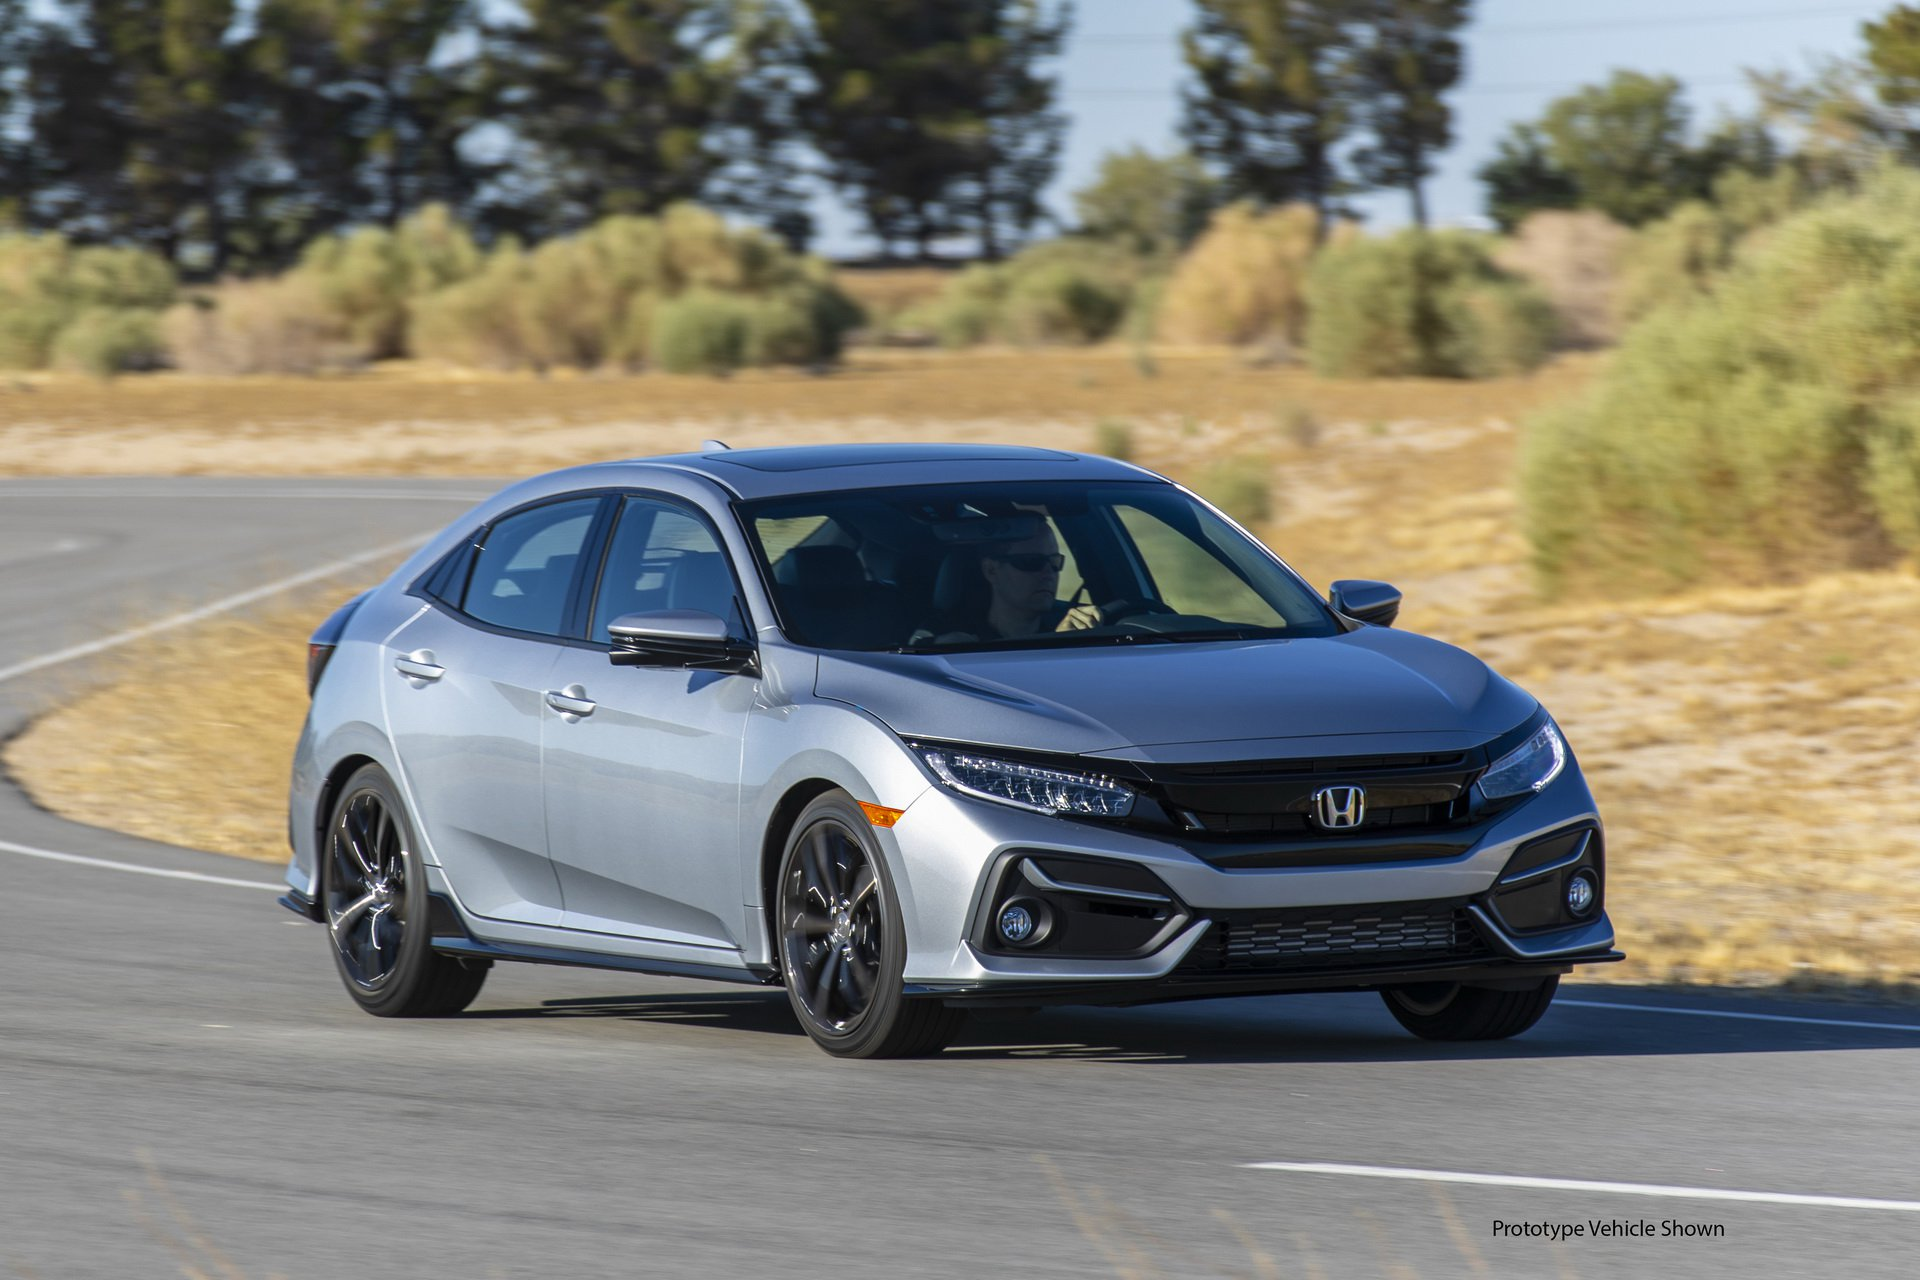 Honda Civic Hatchback Gets Small Cosmetic Tweaks, Price Bump